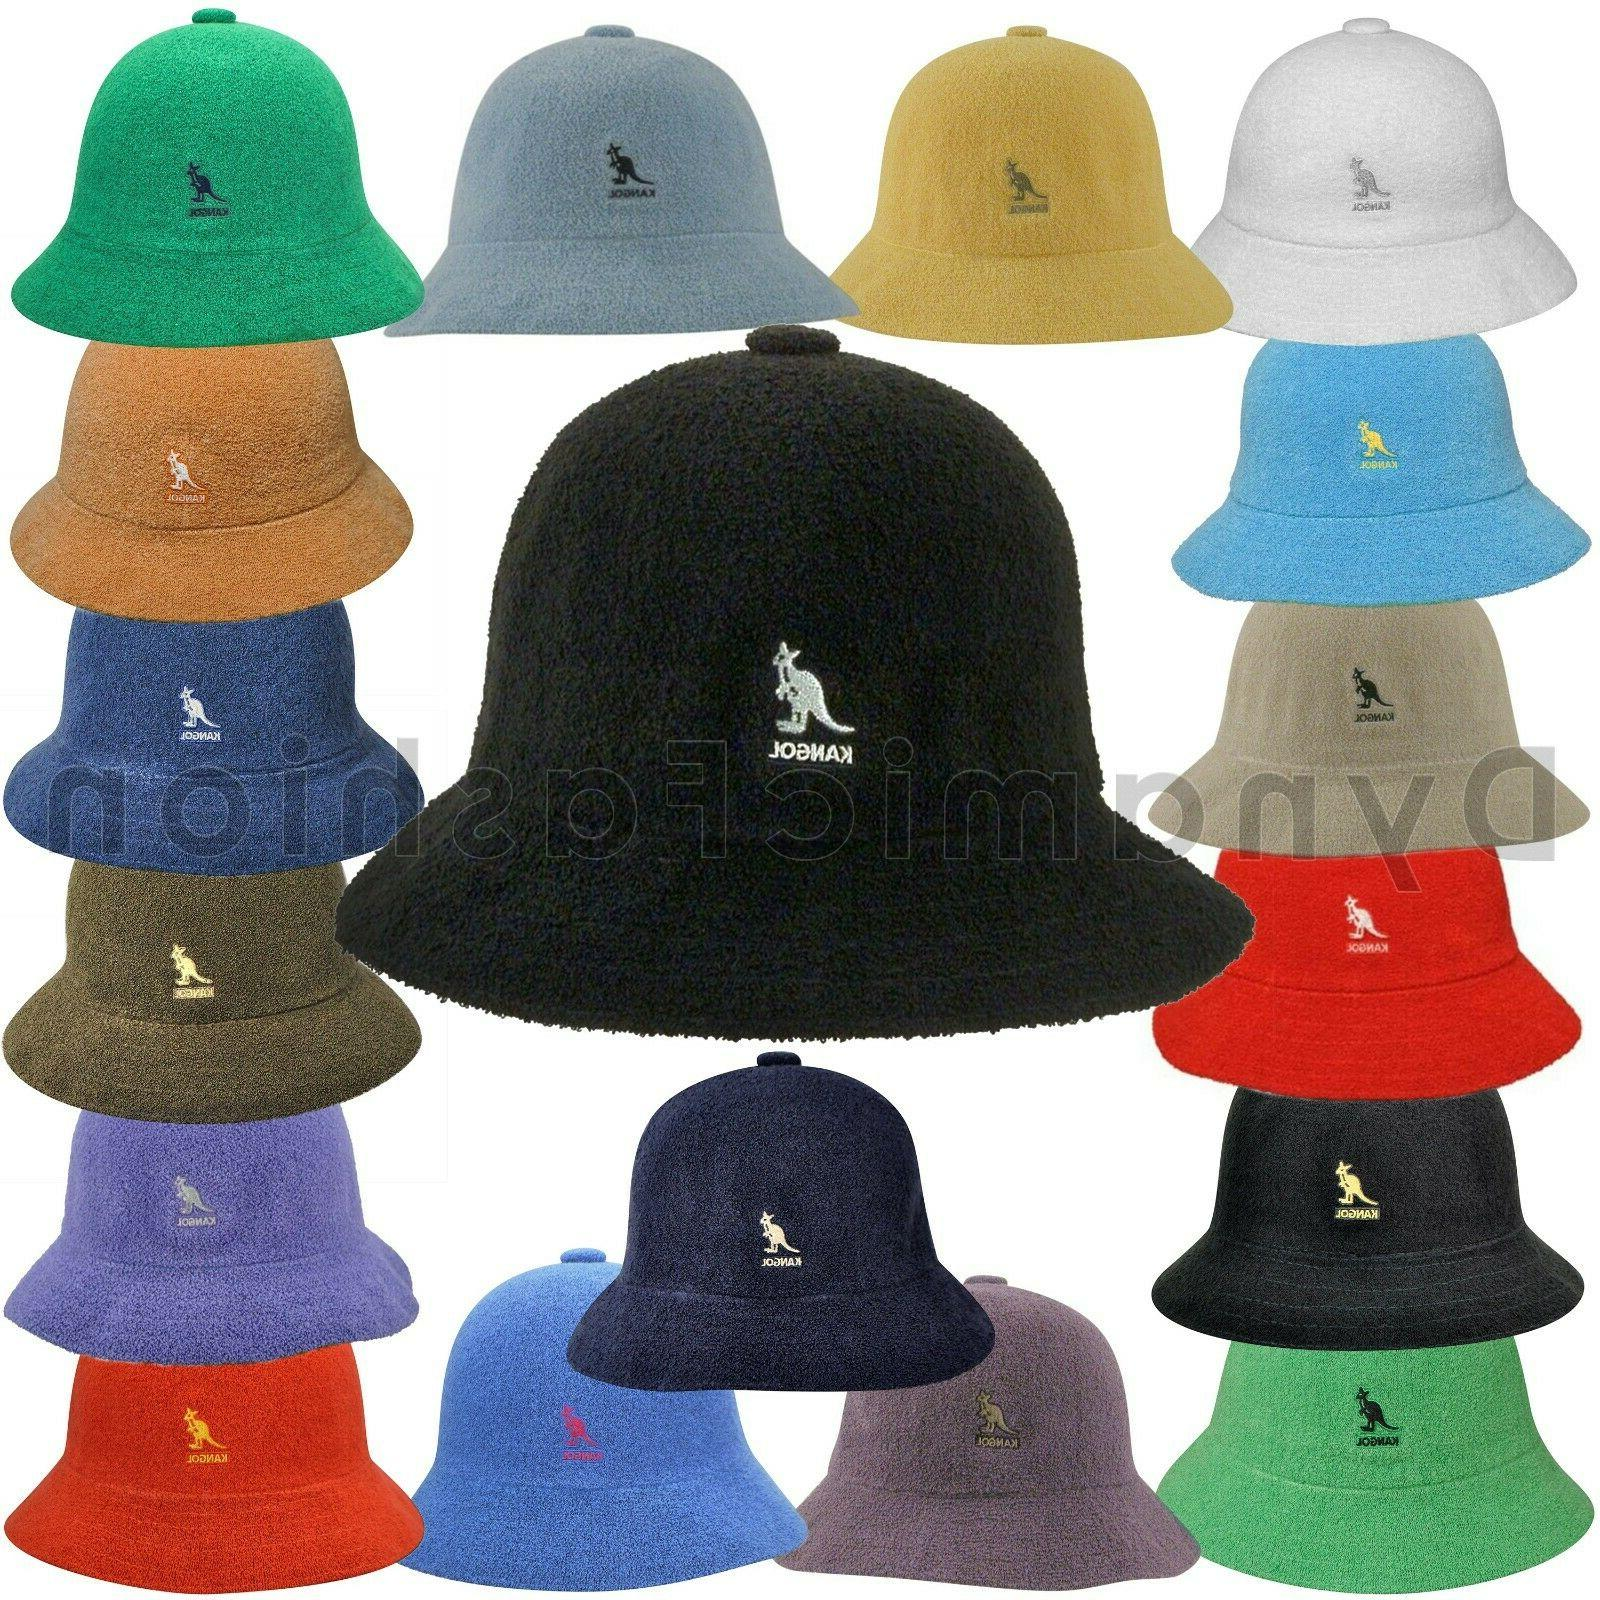 479582eb358f8 Editorial Pick Authentic KANGOL Bermuda Casual Bucket Cap Hat 0397BC Sizes